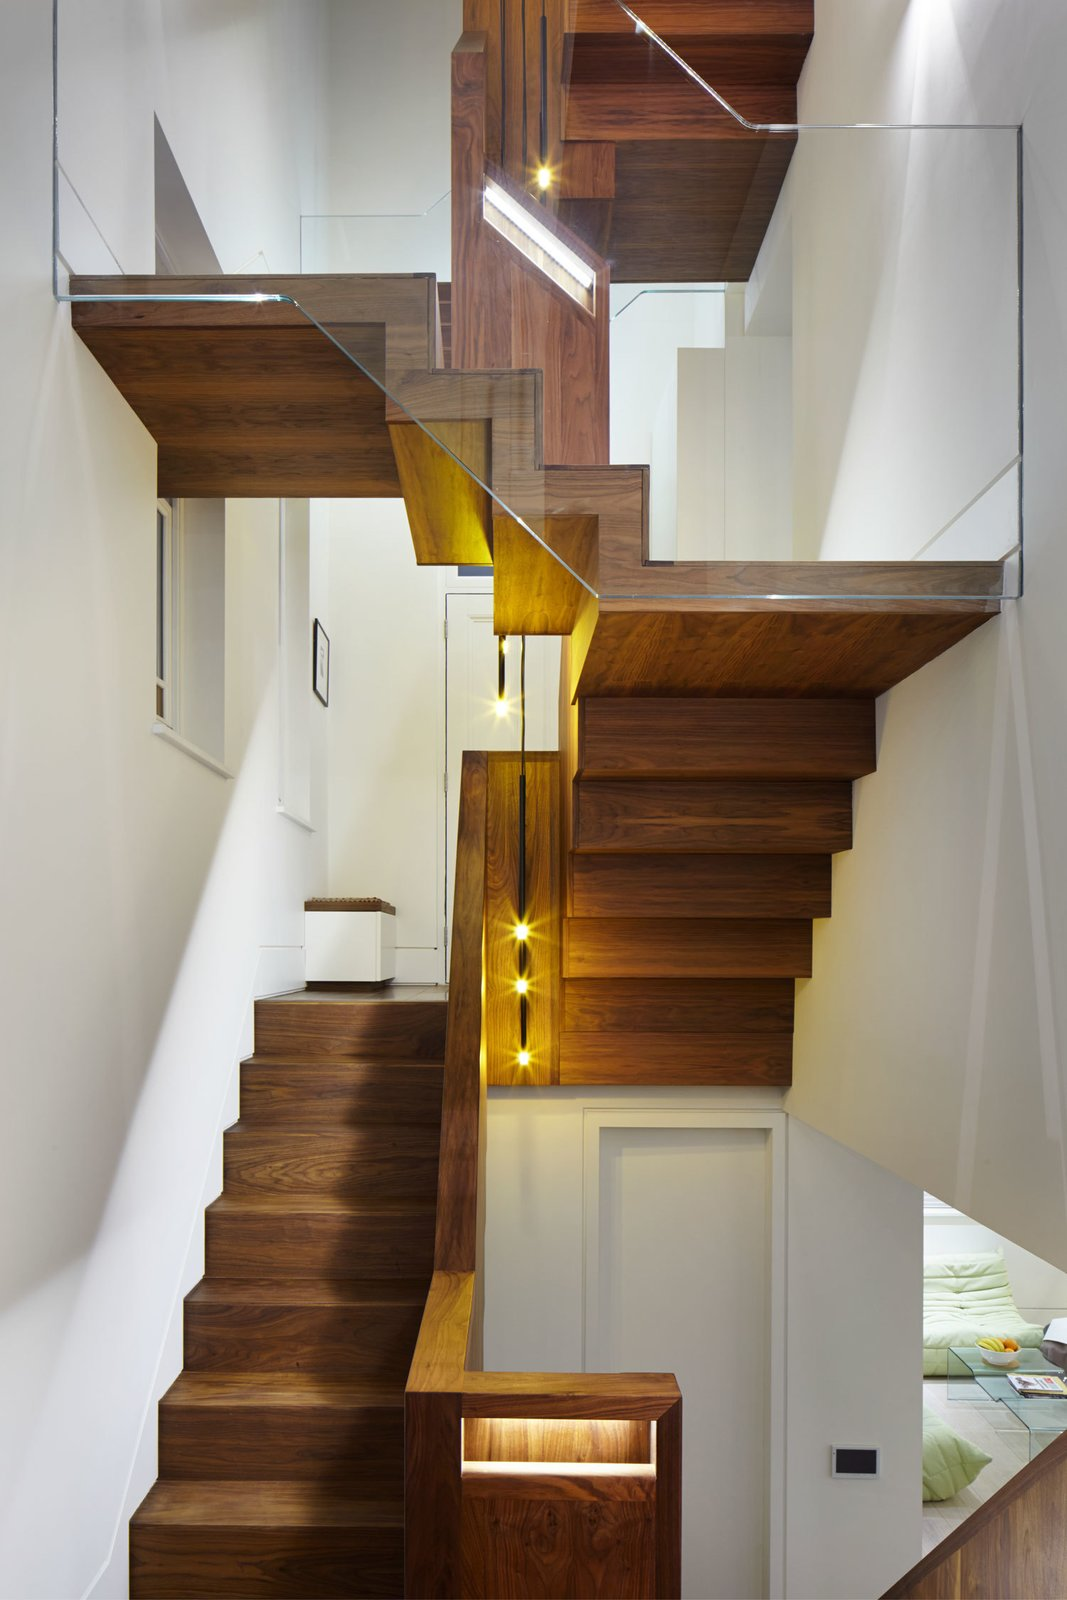 #stairs #interior #inside #indoor #FraherArchitects #London #modern #minimalist #wood #glass #shape #lighting #walnut #TomDixon   Photo by Jack Hobhouse   60+ Modern Lighting Solutions by Dwell from step by step